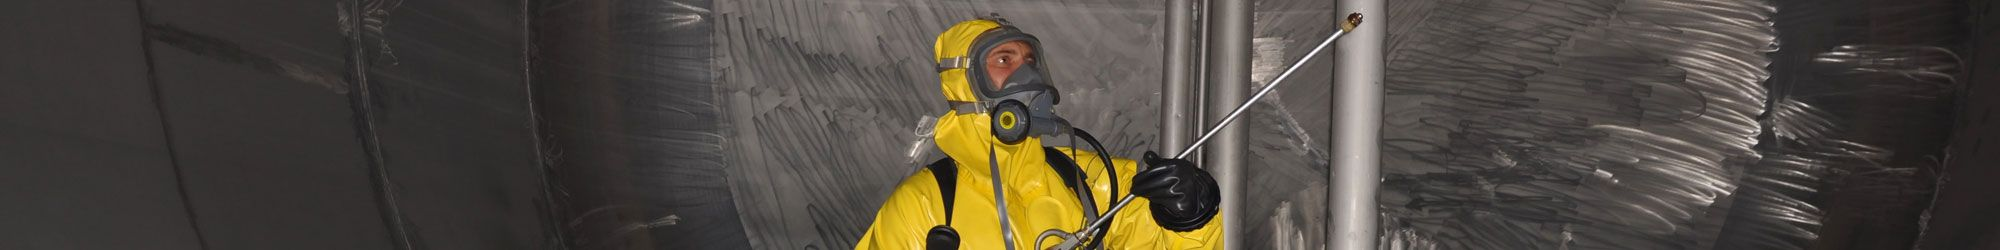 Industrial factory cleaning in safety suit